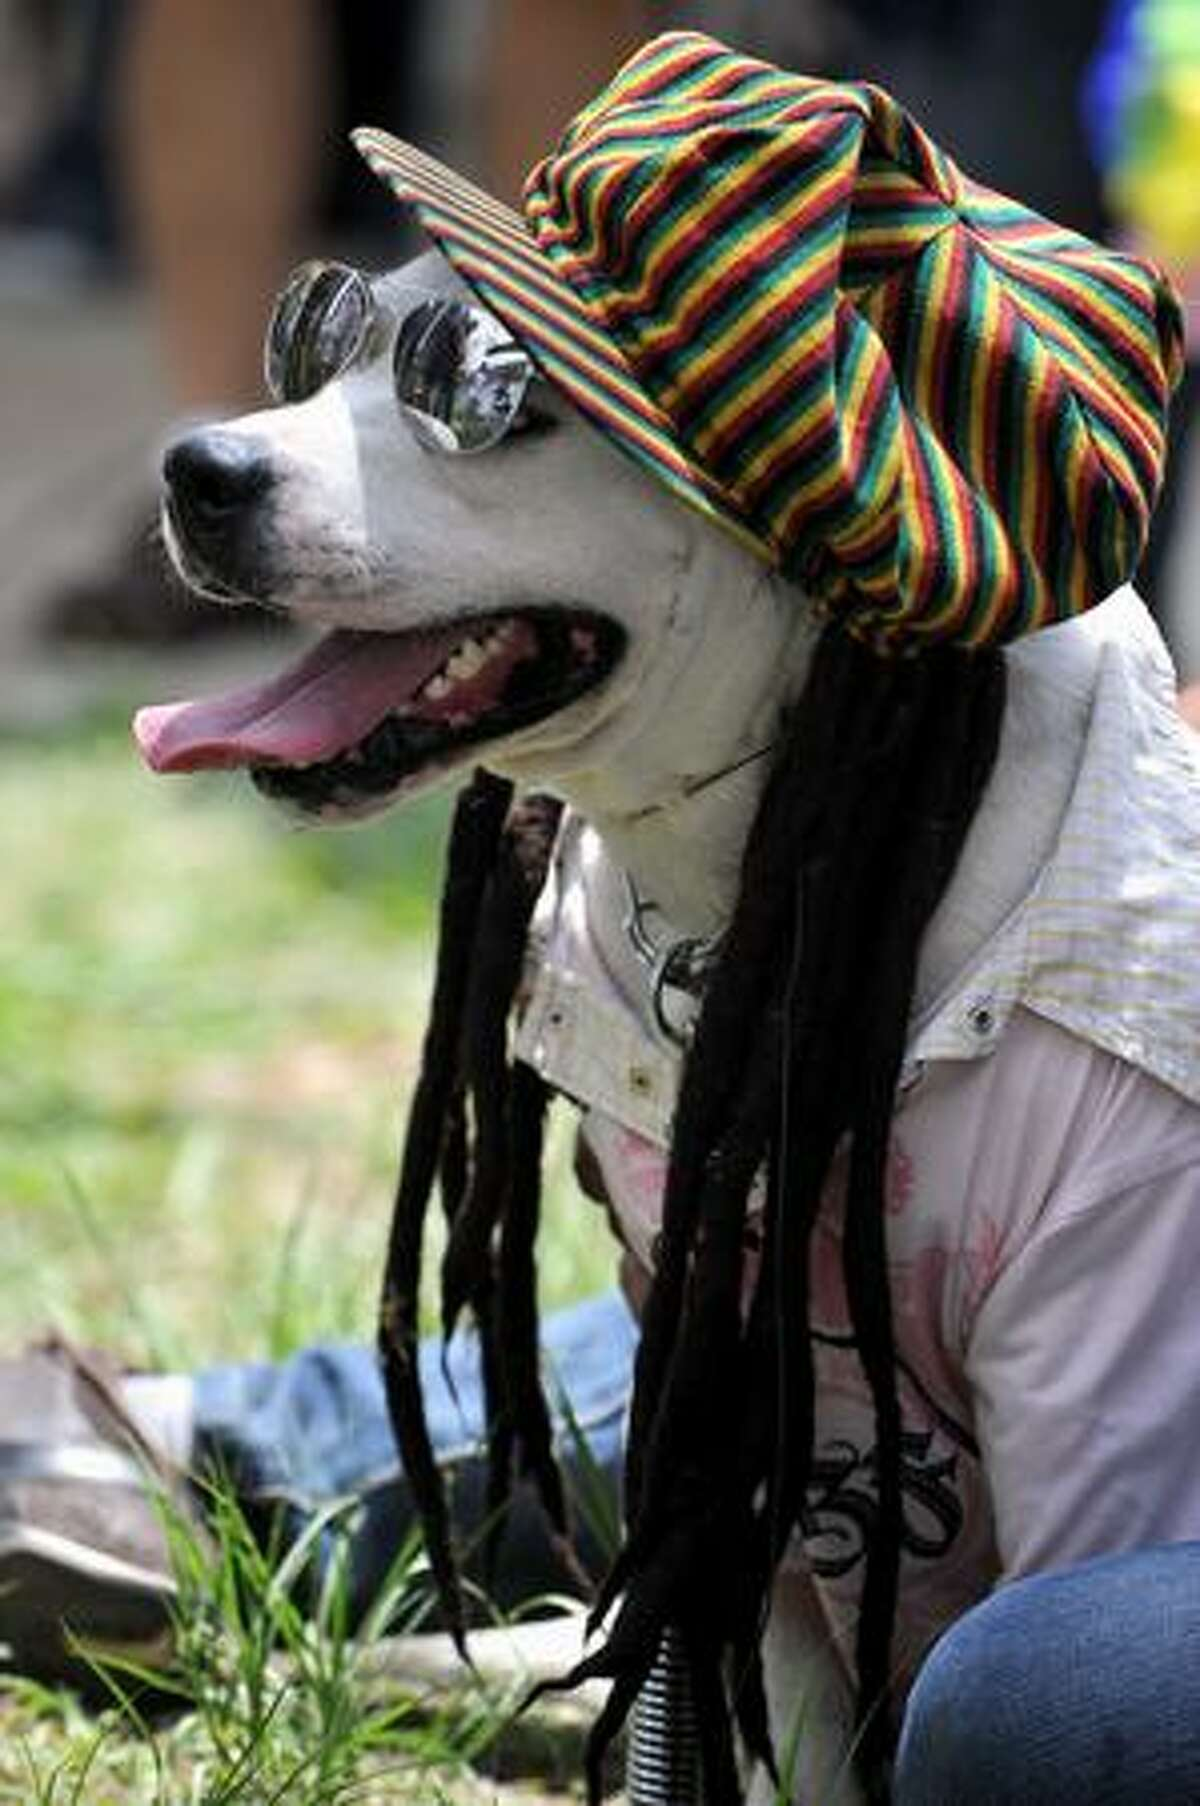 A dog dressed as a rastafarian participates in the Family Pet festival in Cali, department of Valle del Cauca, Colombia.